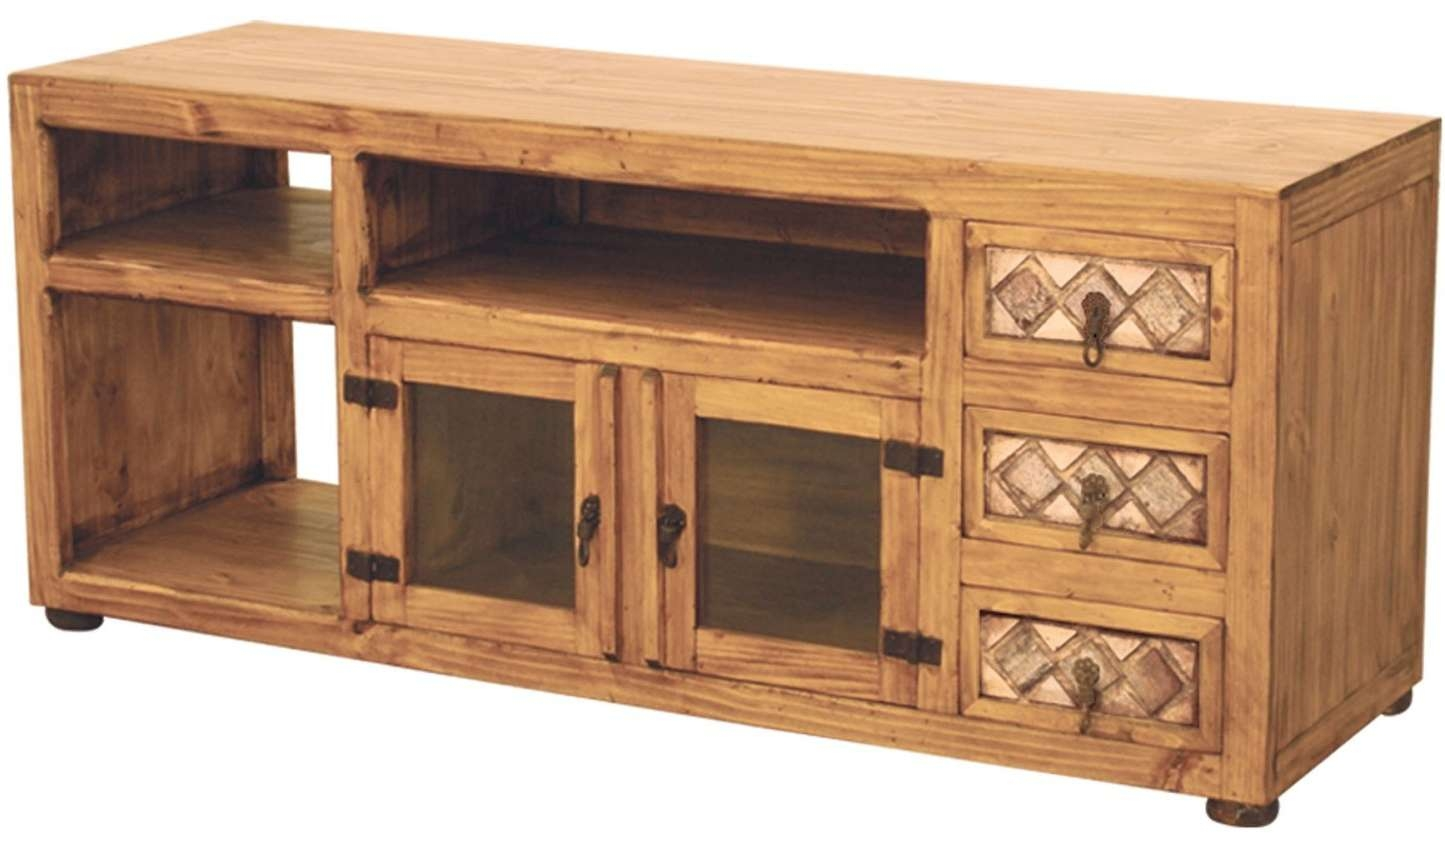 Tv : Pine Tv Stands Amazing Pine Tv Stands Wide Screen Tv Stand 2 Inside Pine Tv Stands (View 12 of 20)